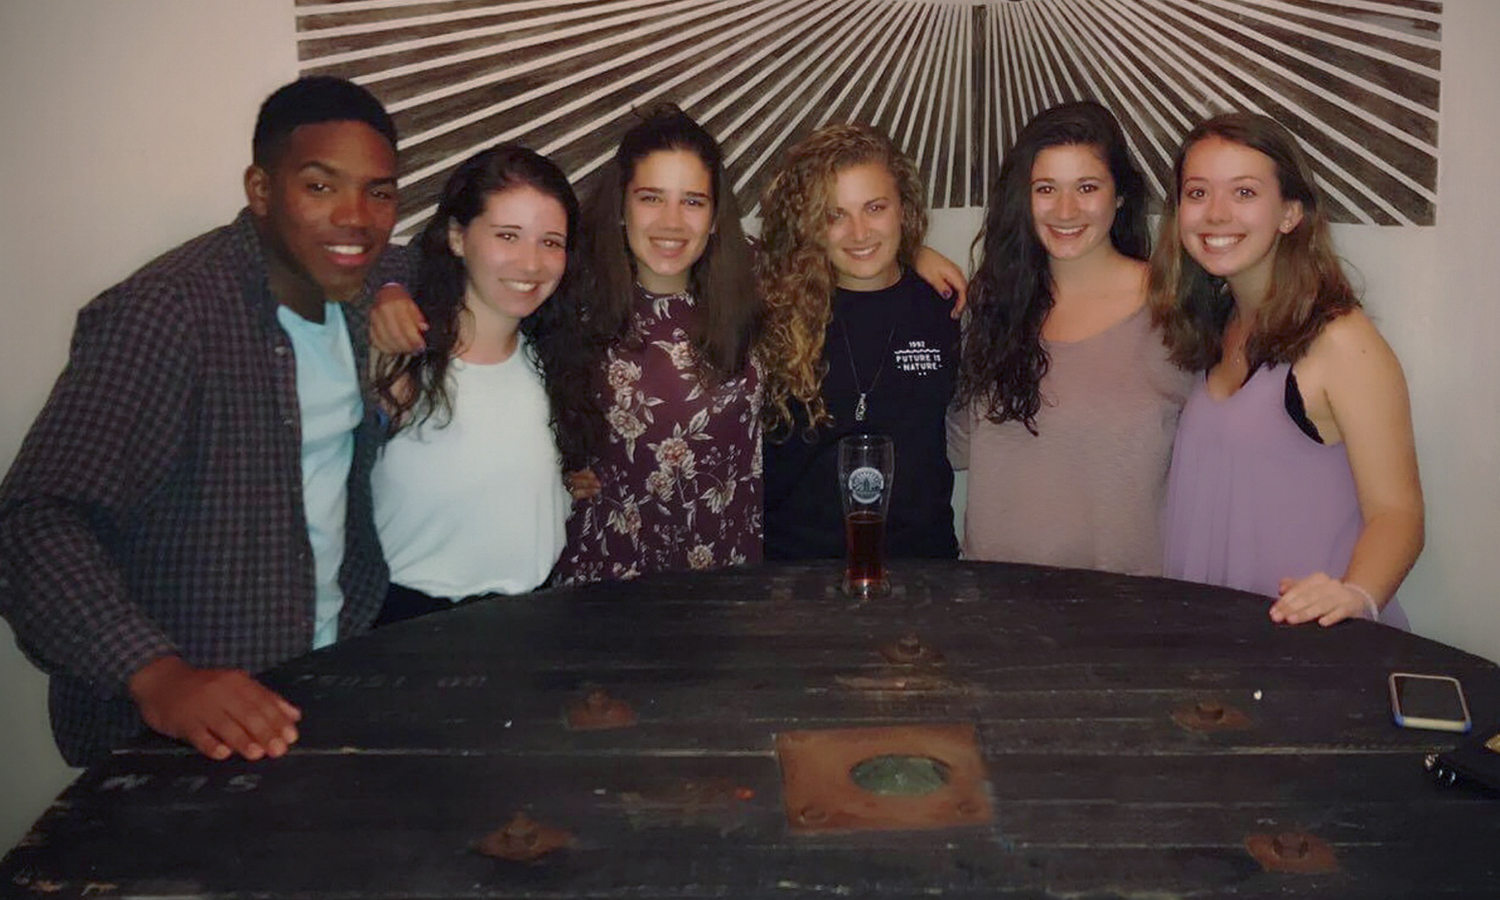 """This """"spring break"""" is sunny for us students currently studying abroad at Rhodes University in Grahamstown, South Africa.From left to right:Matthew Benton '18, Sammy Ruthazer '18, Jules Picuri '19, Hannah Wood '18, Gemma Caglioti '19, Miranda Smith '18    RUTHAZER, SAMANTHA"""